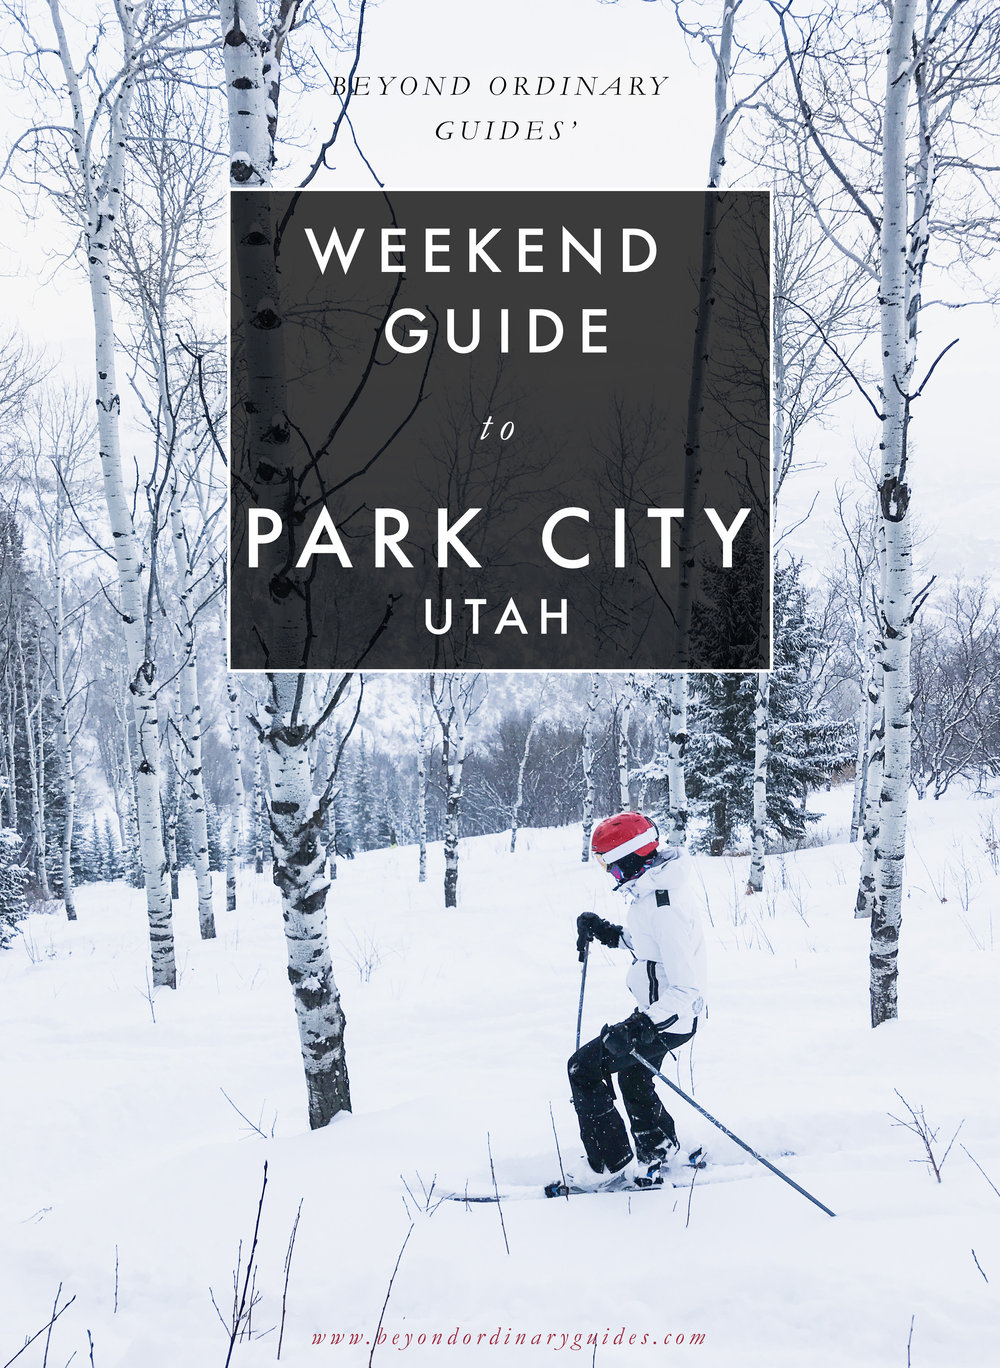 A Weekend Guide to Park City, Utah